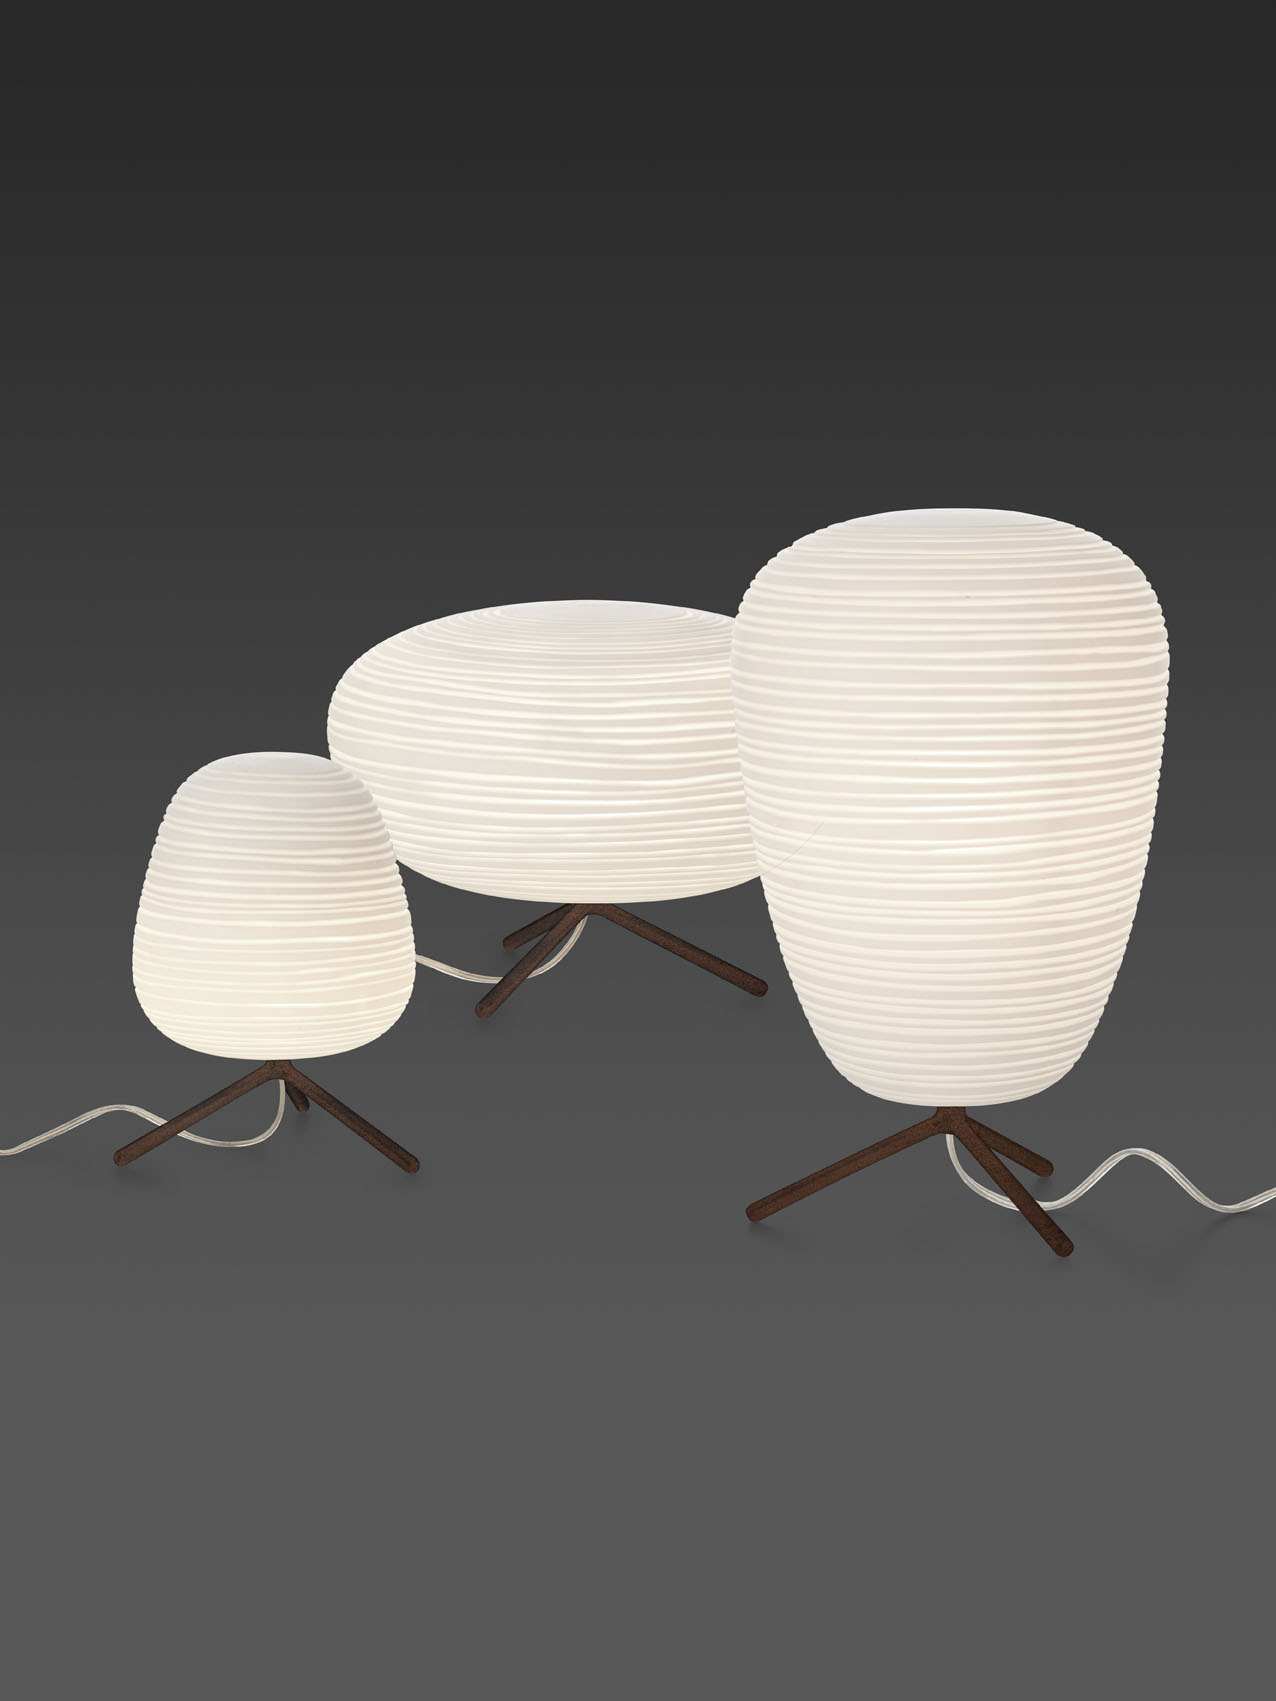 Great Rice Paper Table Lamp